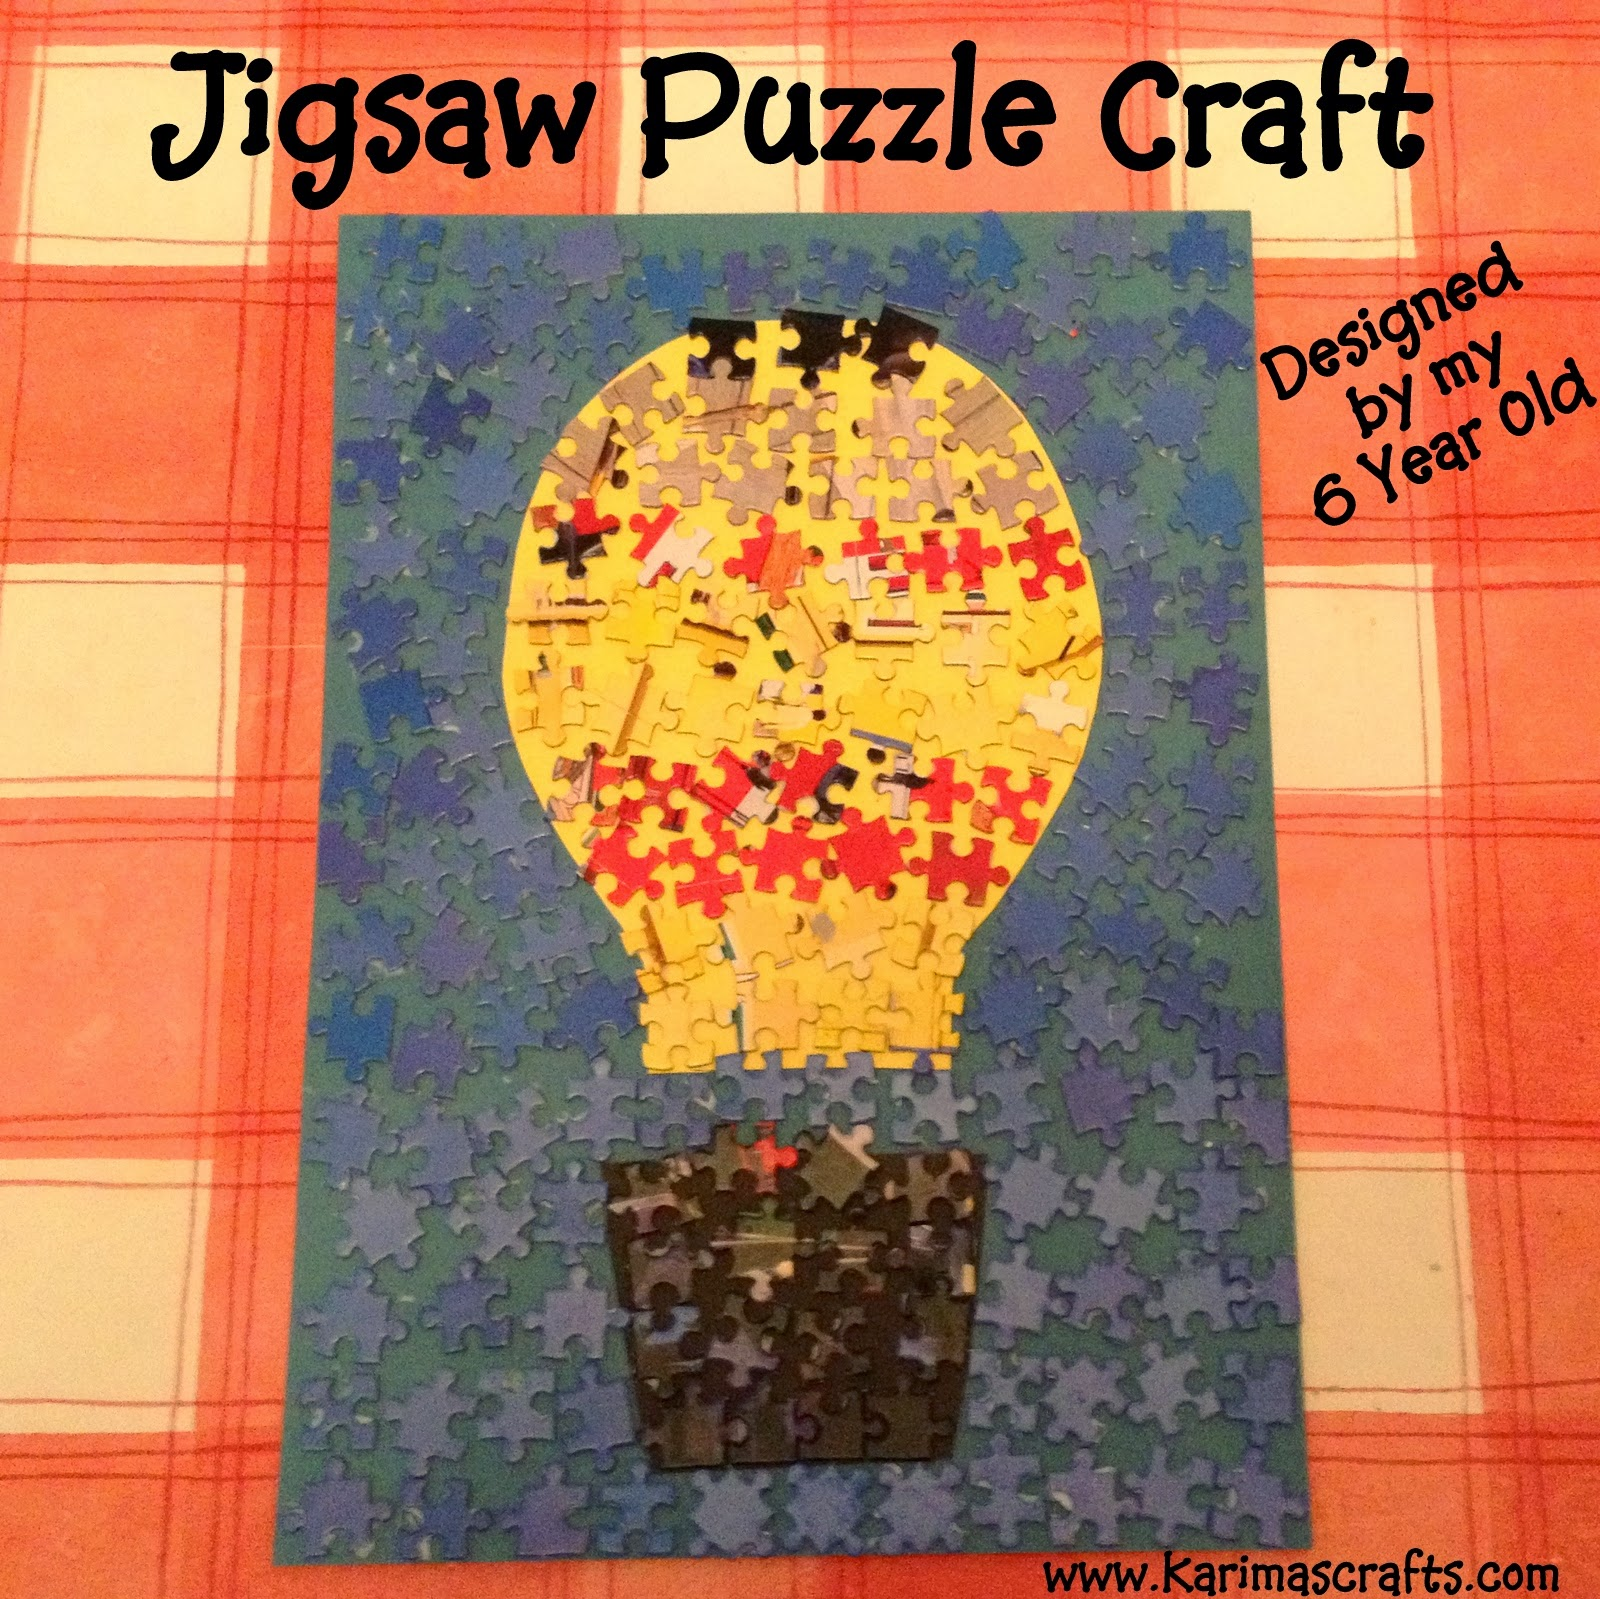 jigsaw puzzle craft idea picture